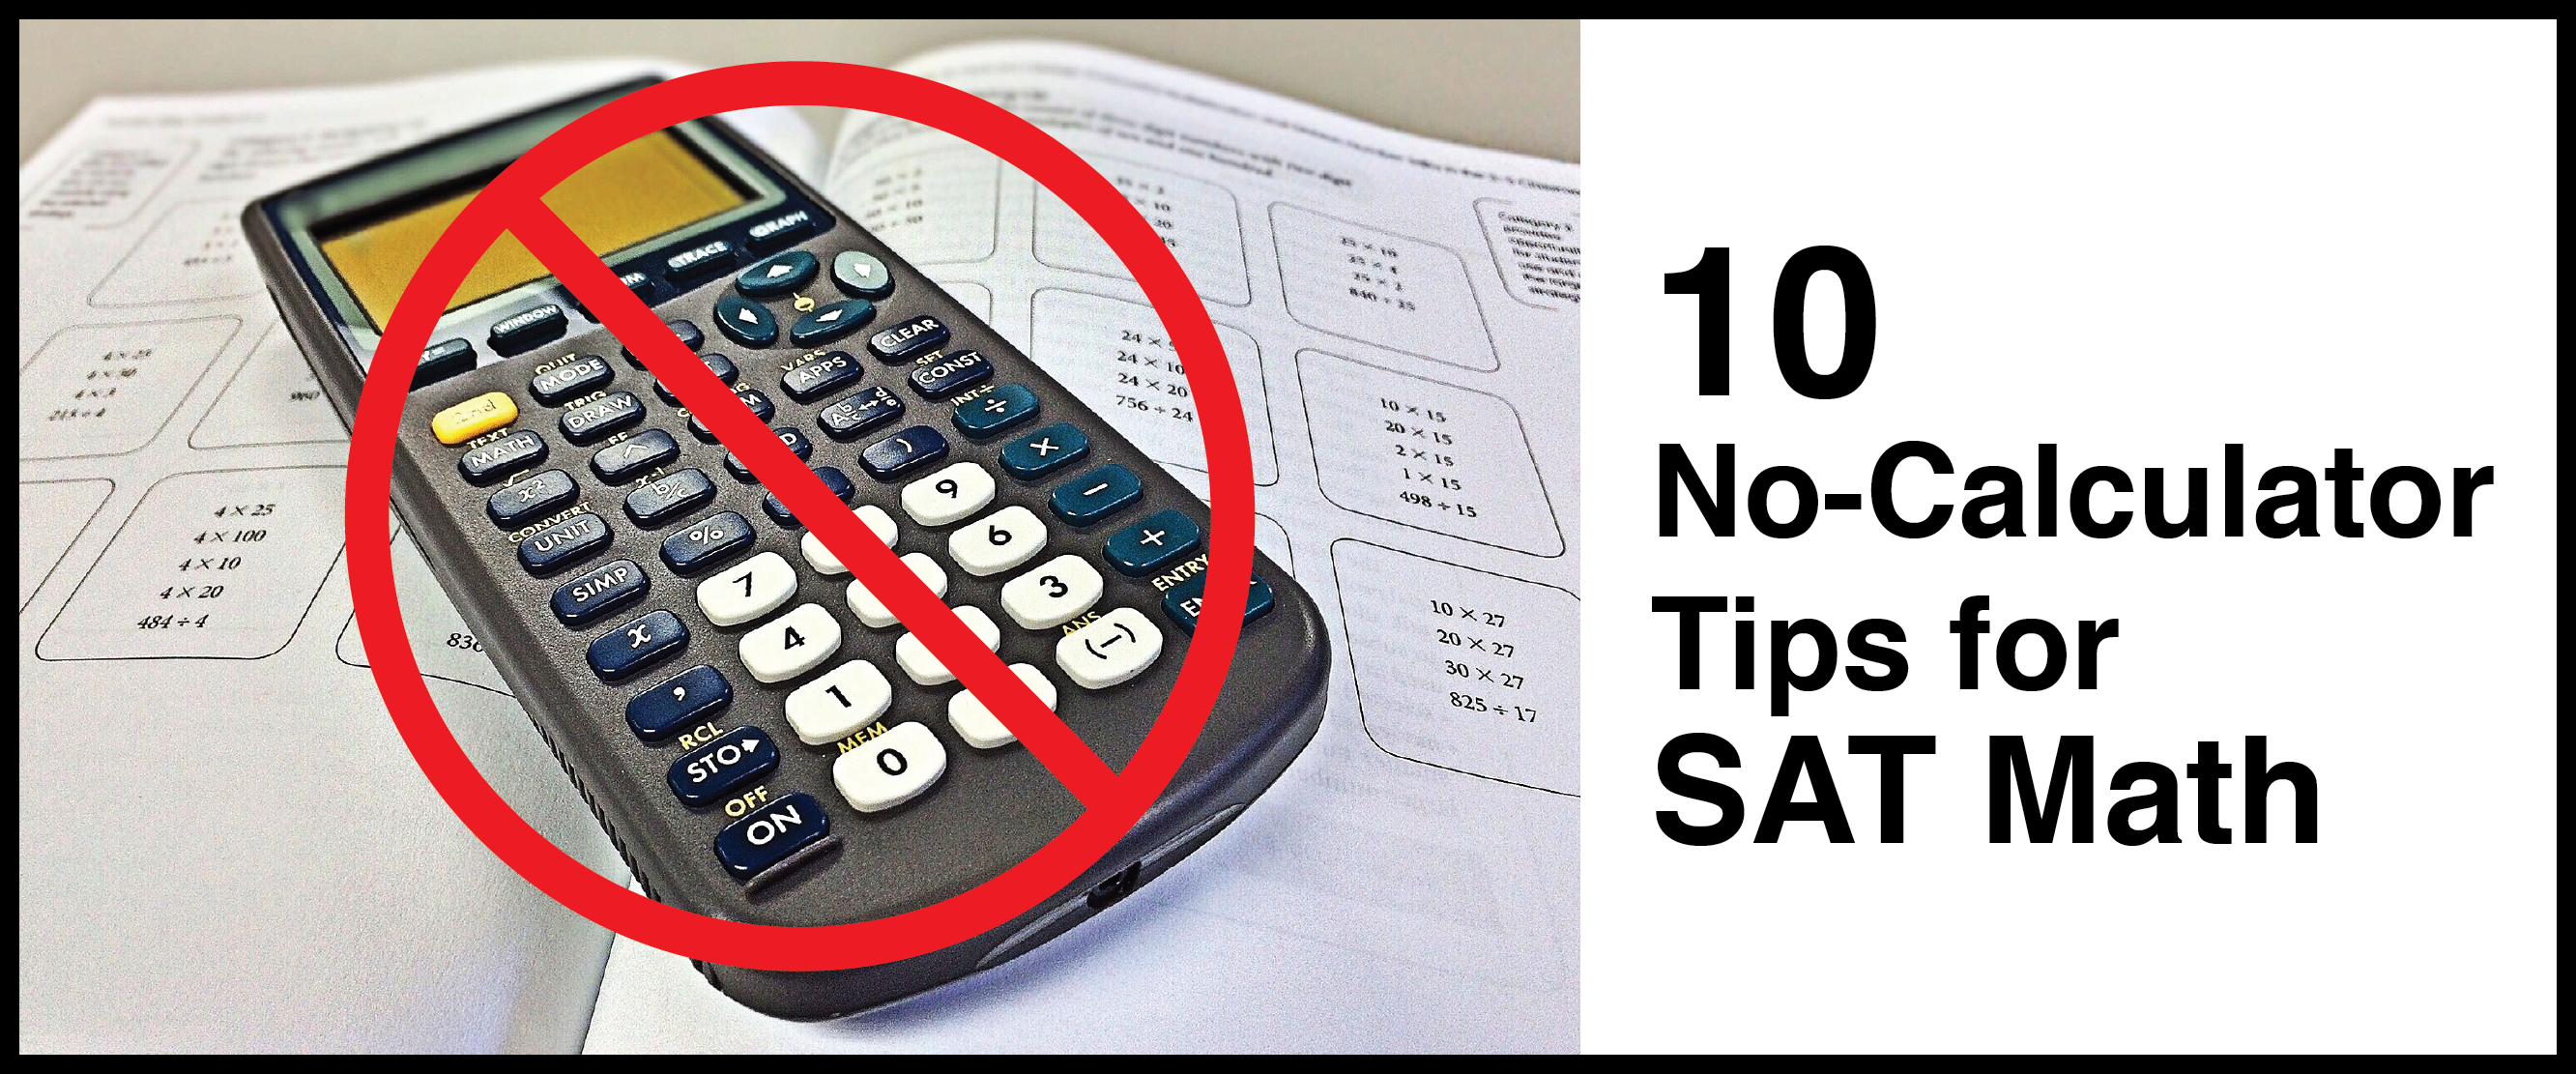 10 No-Calculator Tips for SAT Math - Student-Tutor Education Blog